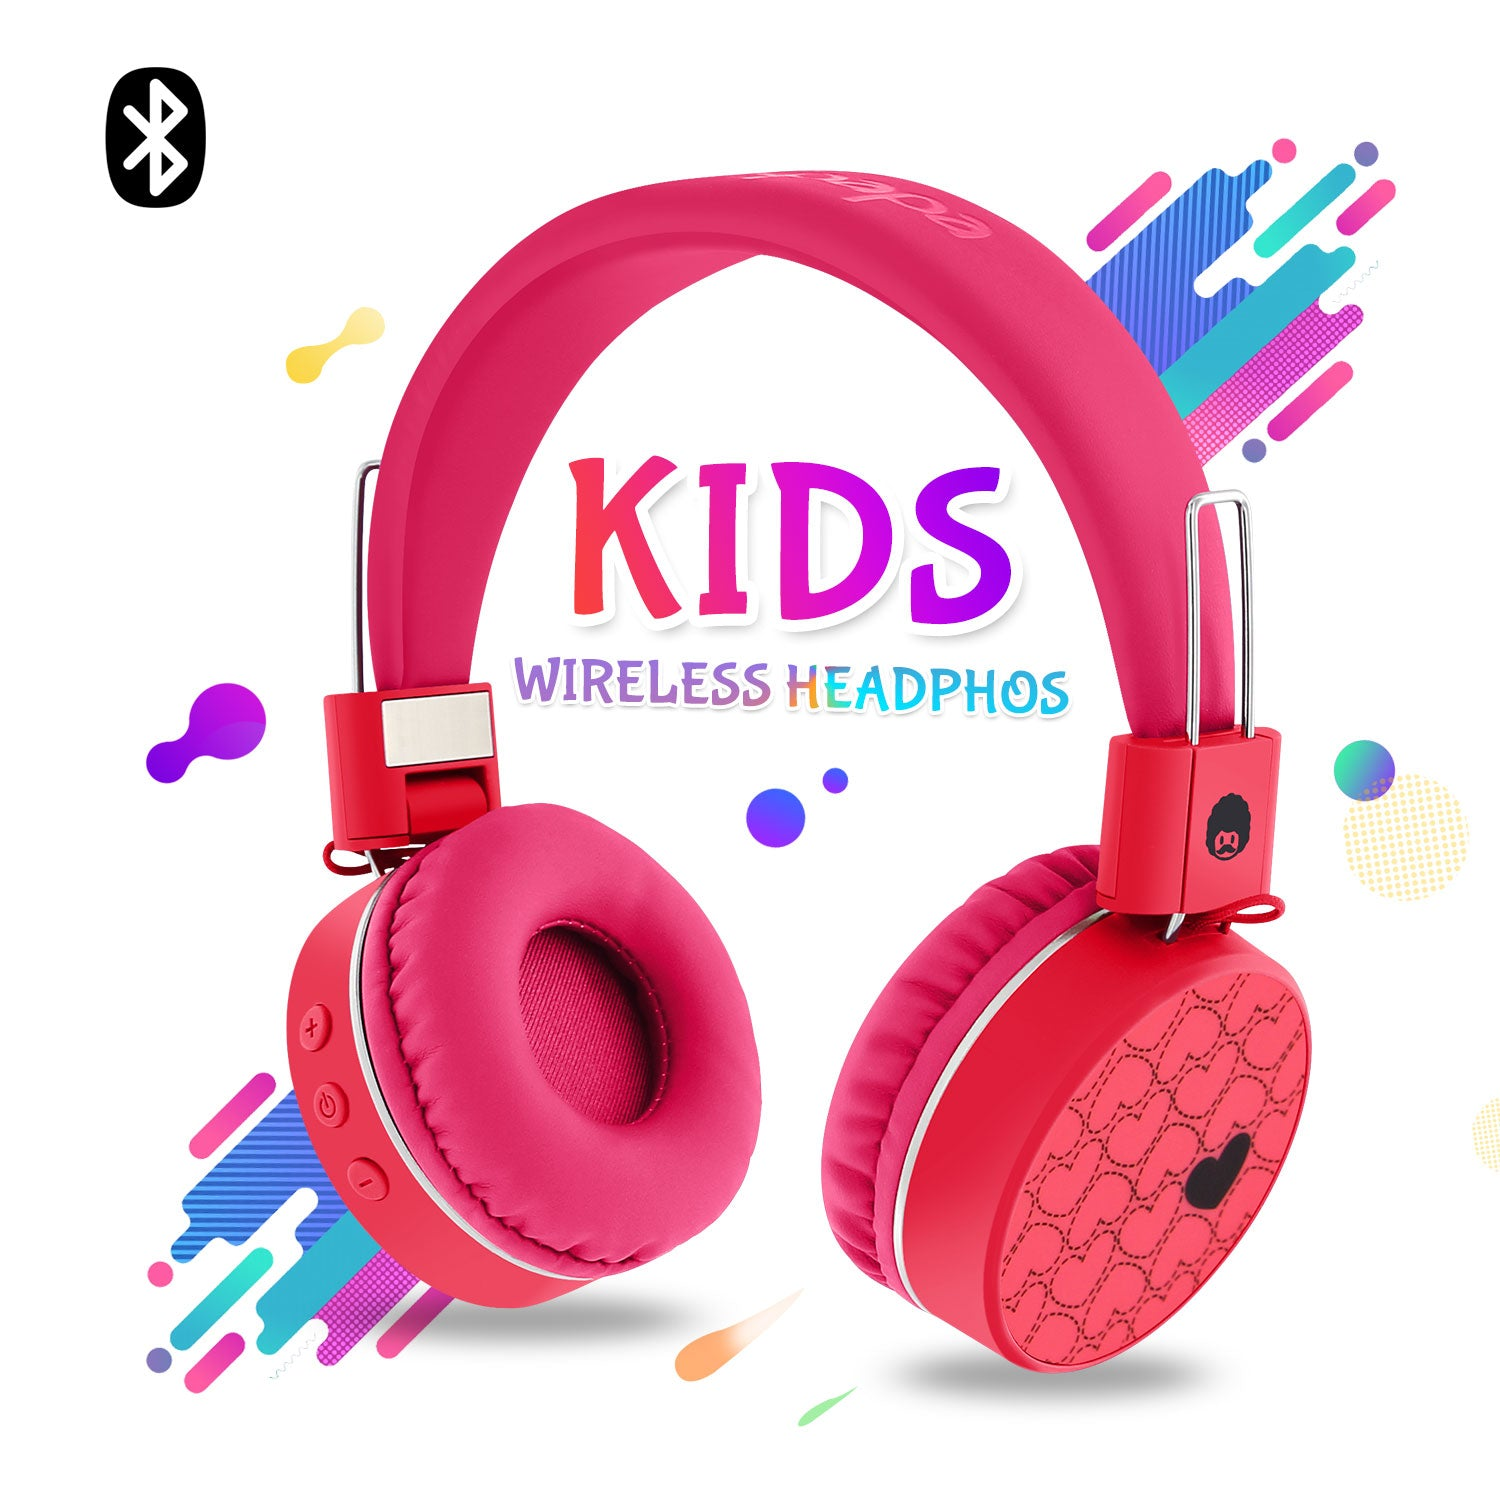 WKD80 Kids Wireless Bluetooth Foldable Stereo Headphones Pink